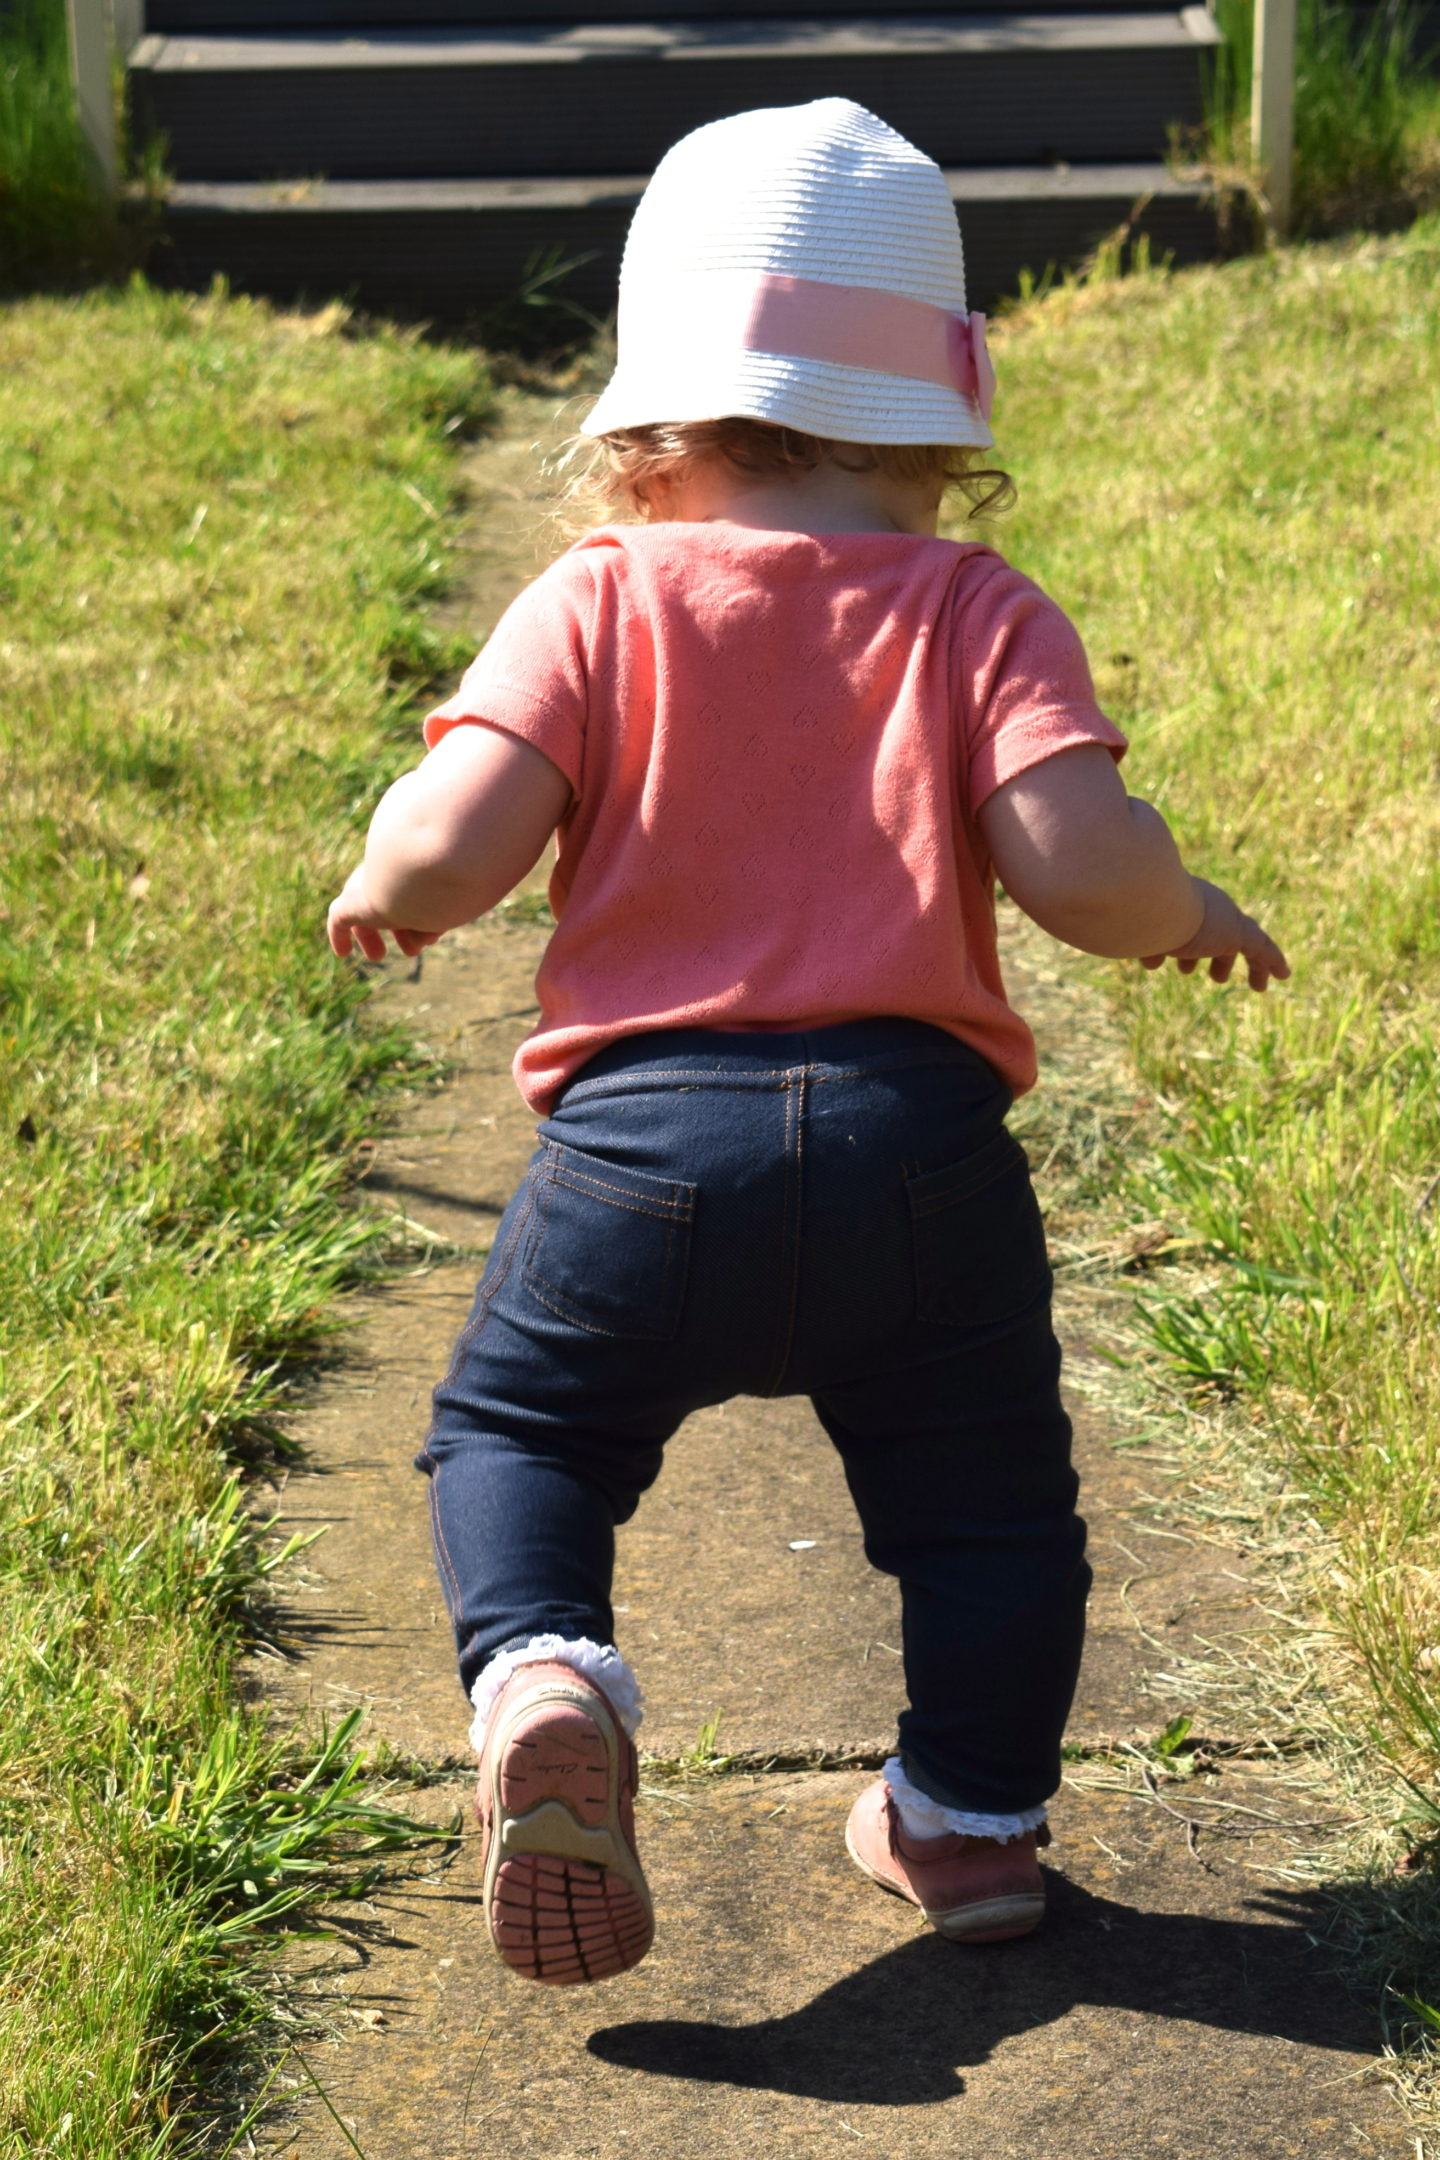 14 months old girl in sunhat, walking up the garden path, away from camera